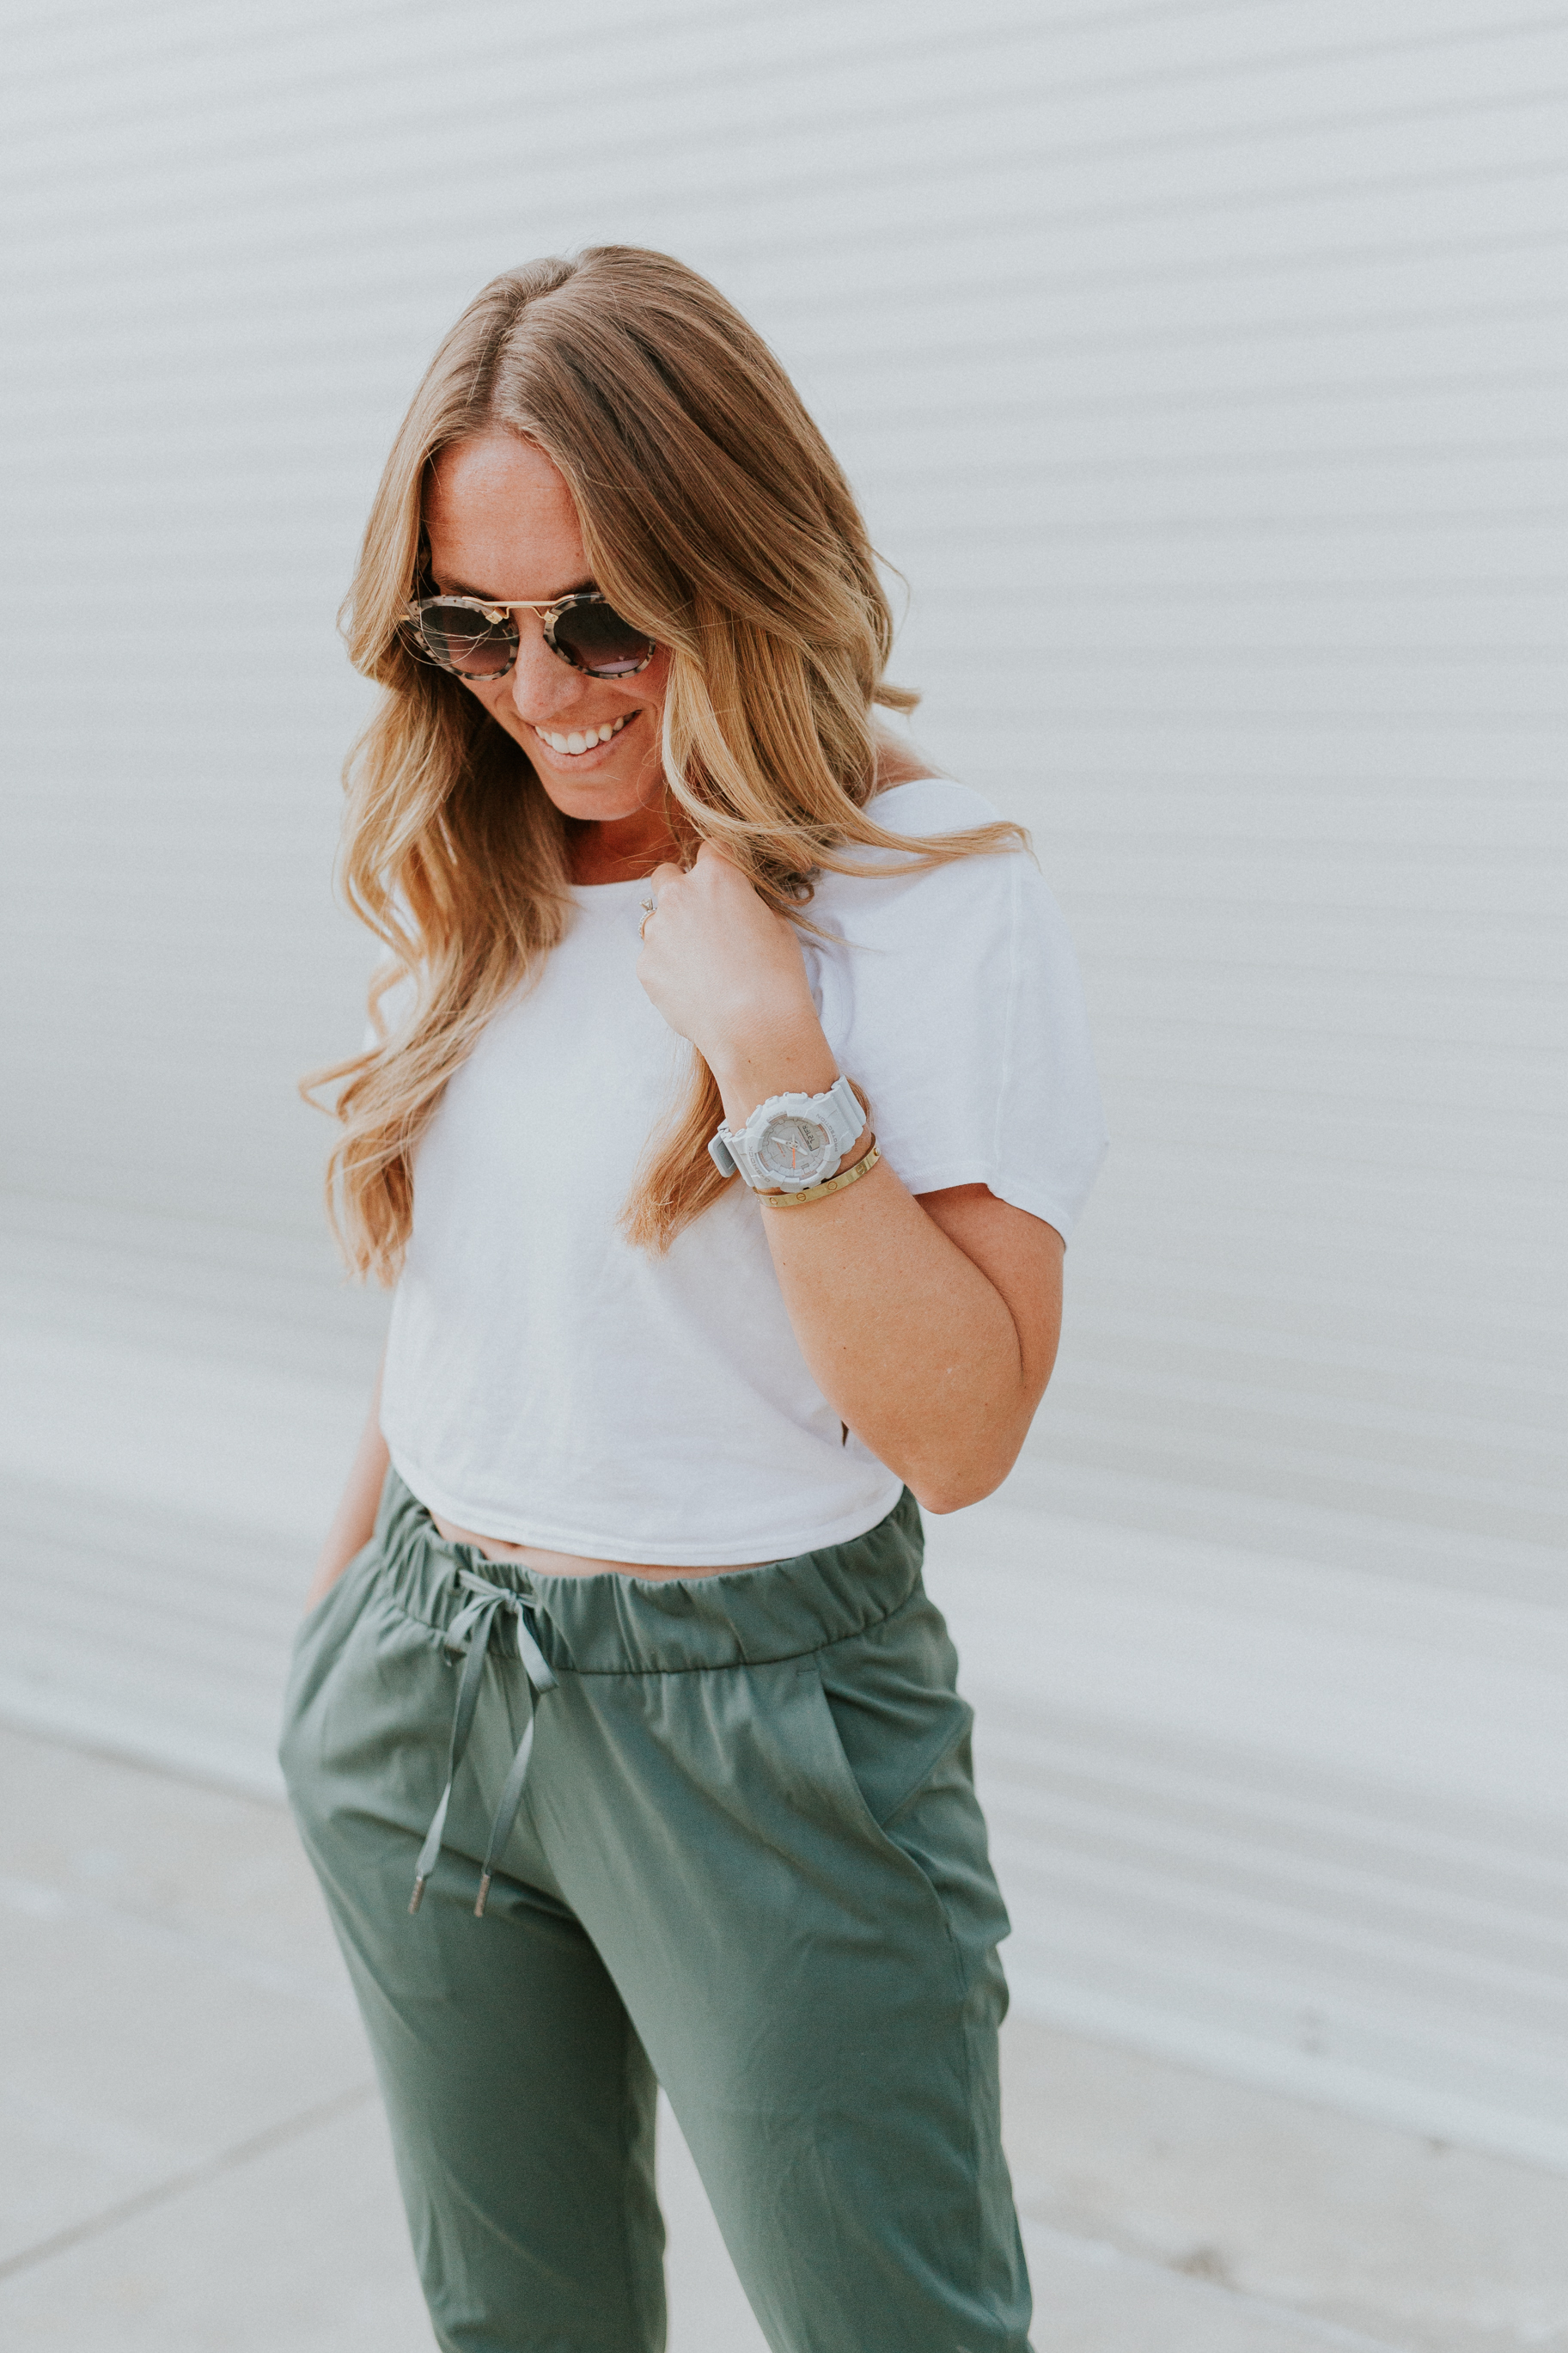 Blogger Gracefully Taylored with G-Shock Watch.jpg